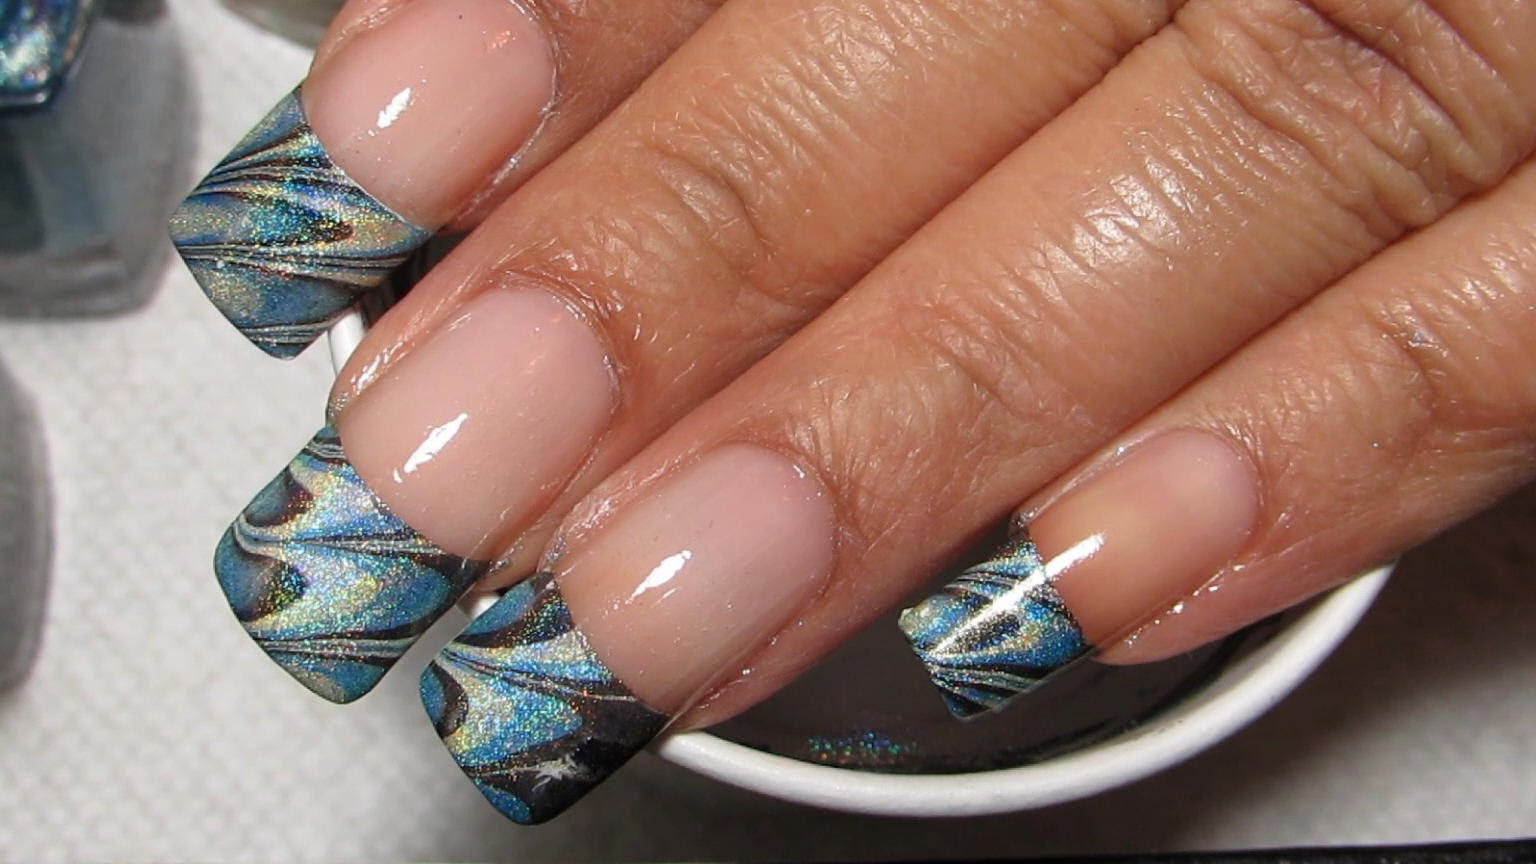 Test Your water Marble Skills With This Awesome French Tip ...